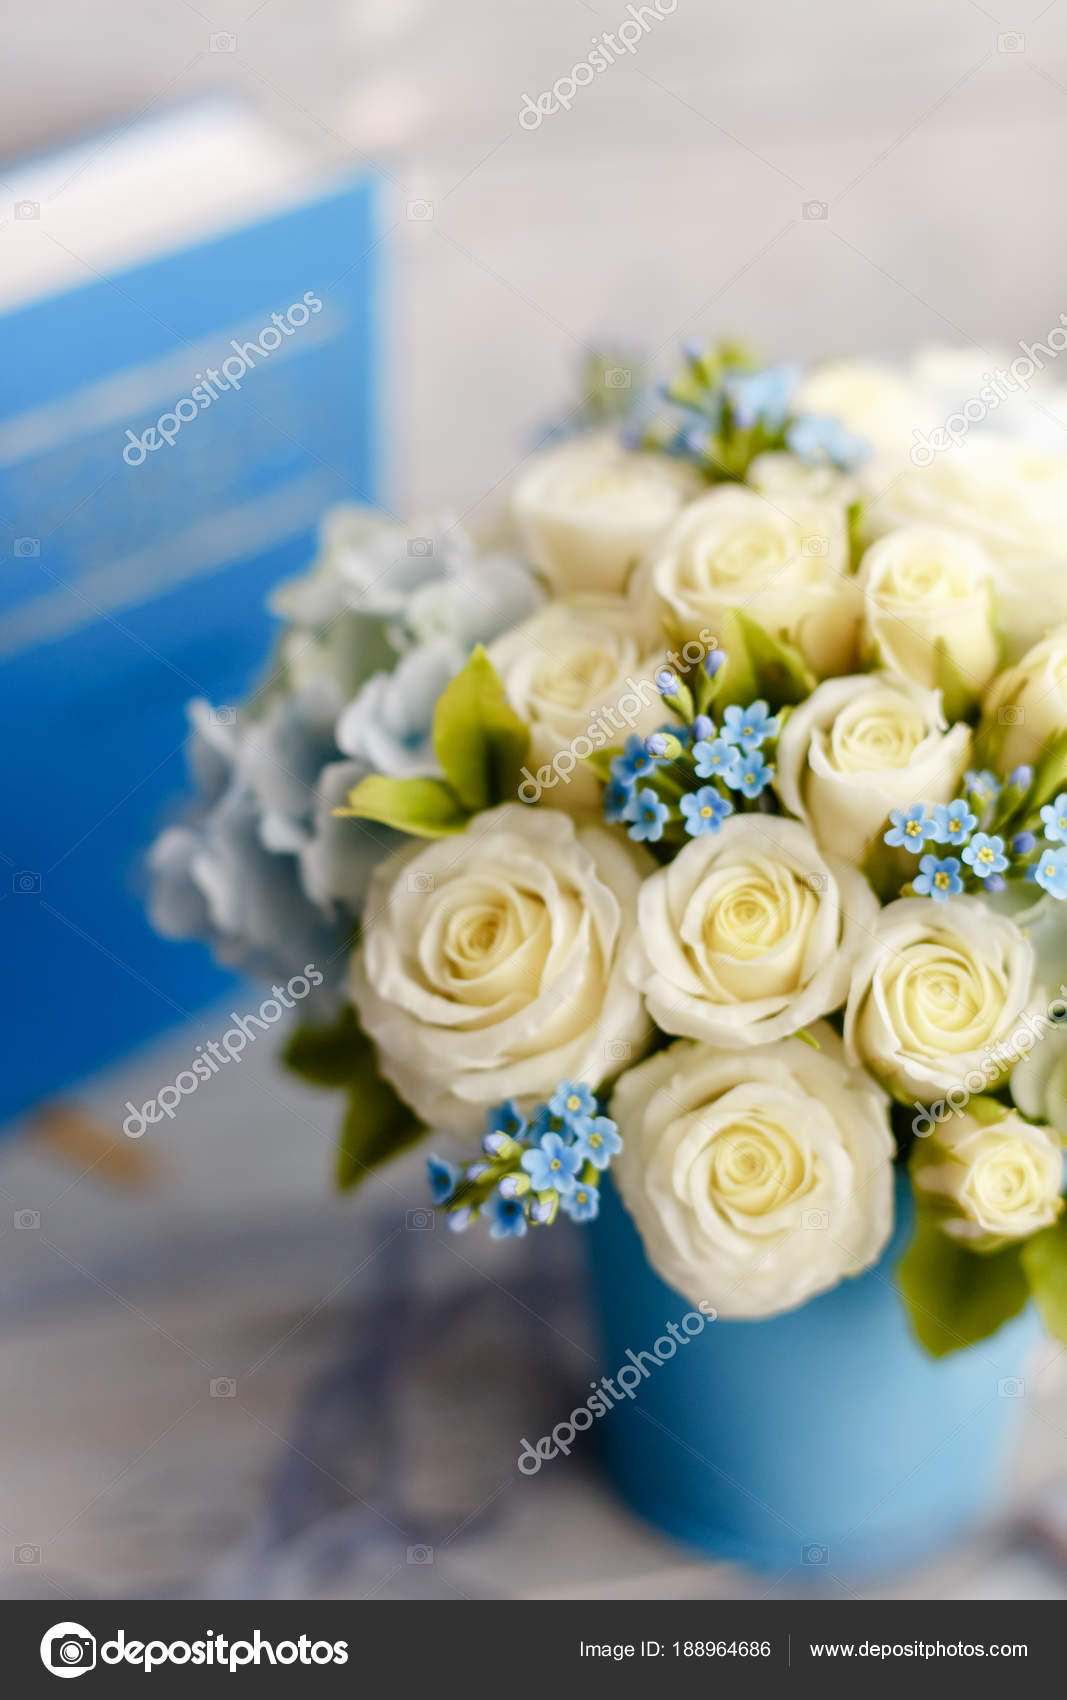 Exquisite Spring Bouquet Blue White Wedding Flowers Wedding Floral